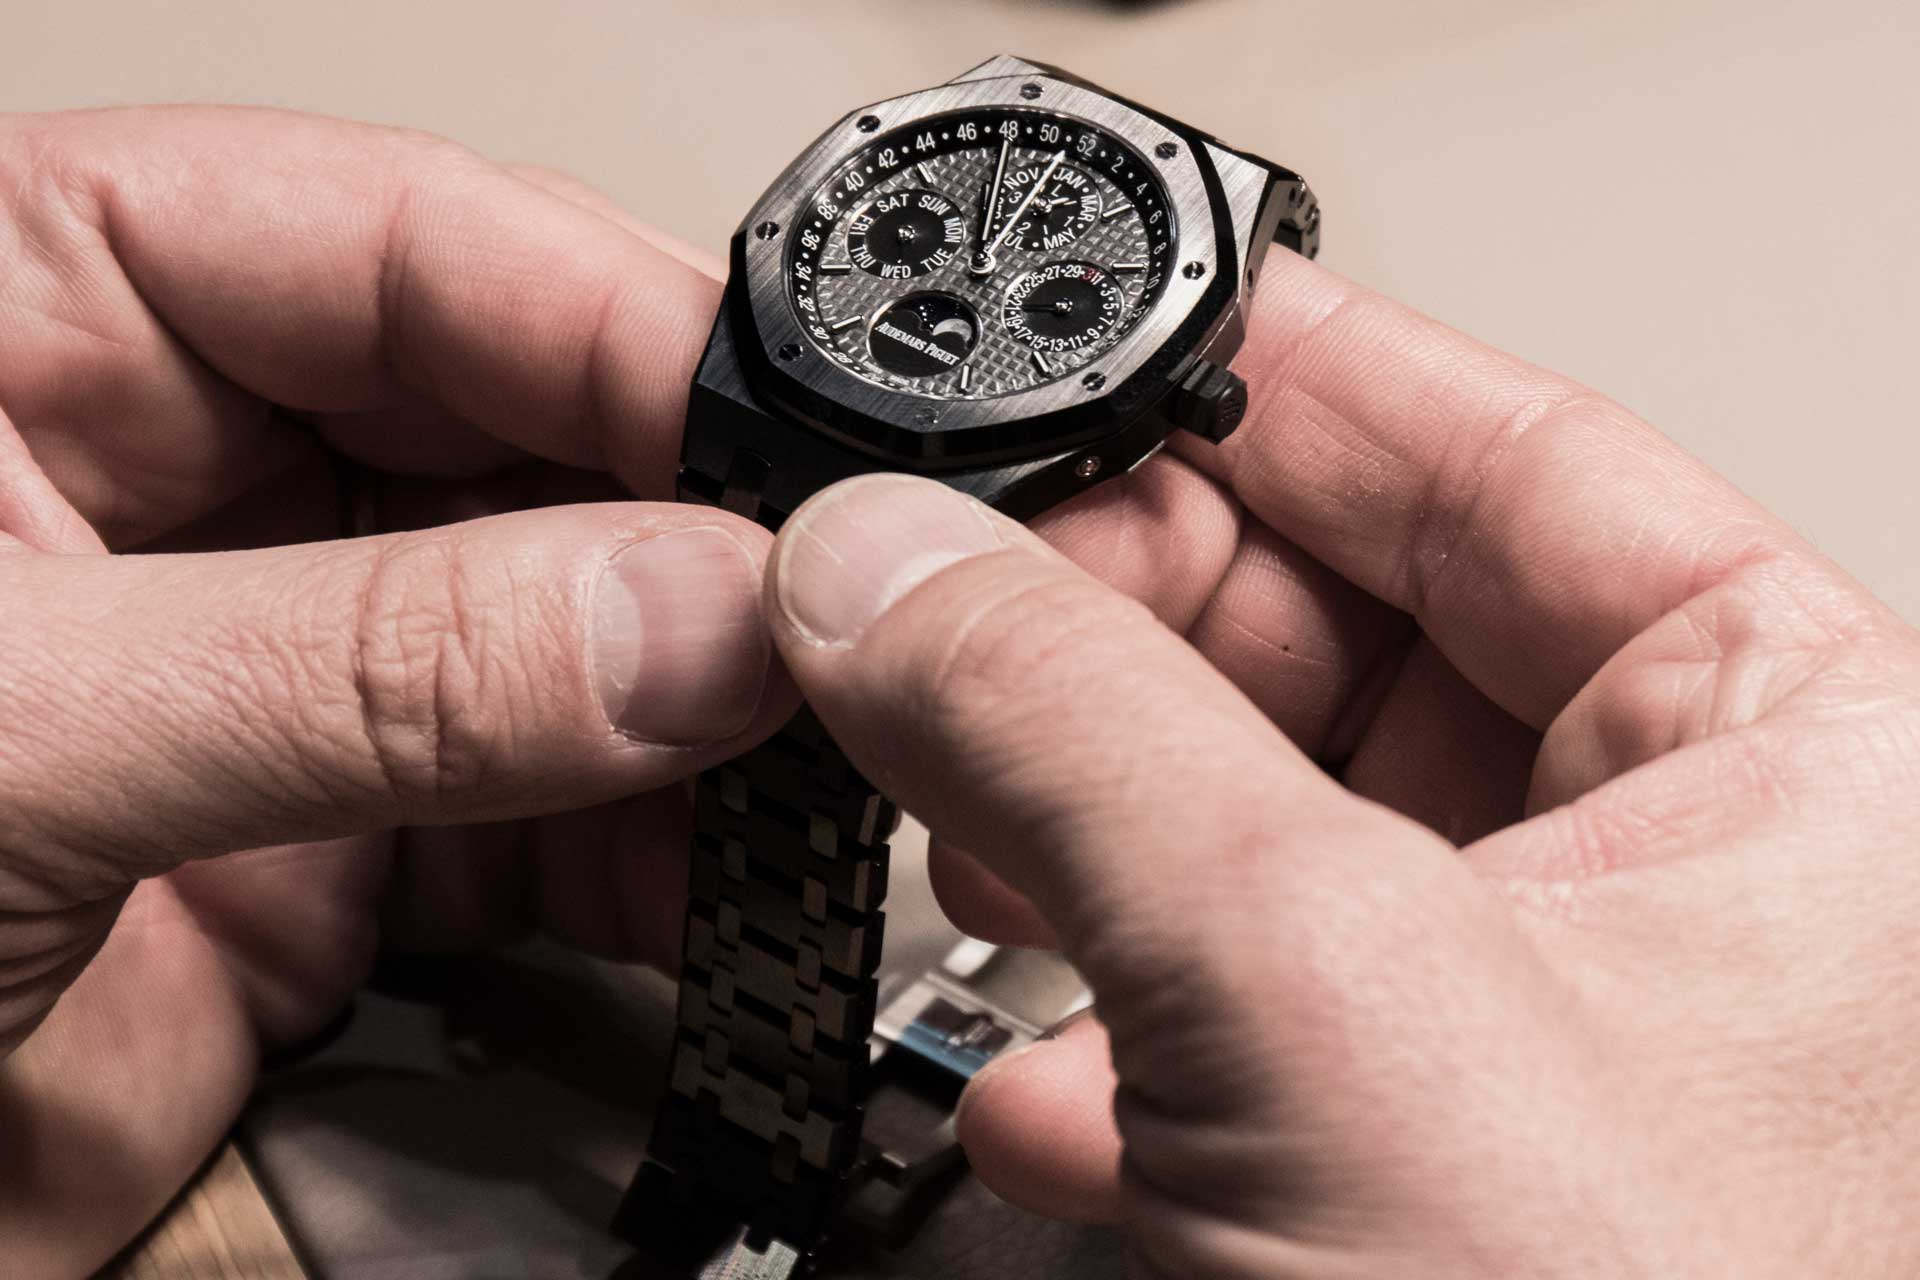 The Royal Oak Perpetual Calendar in hand-finished black ceramic.